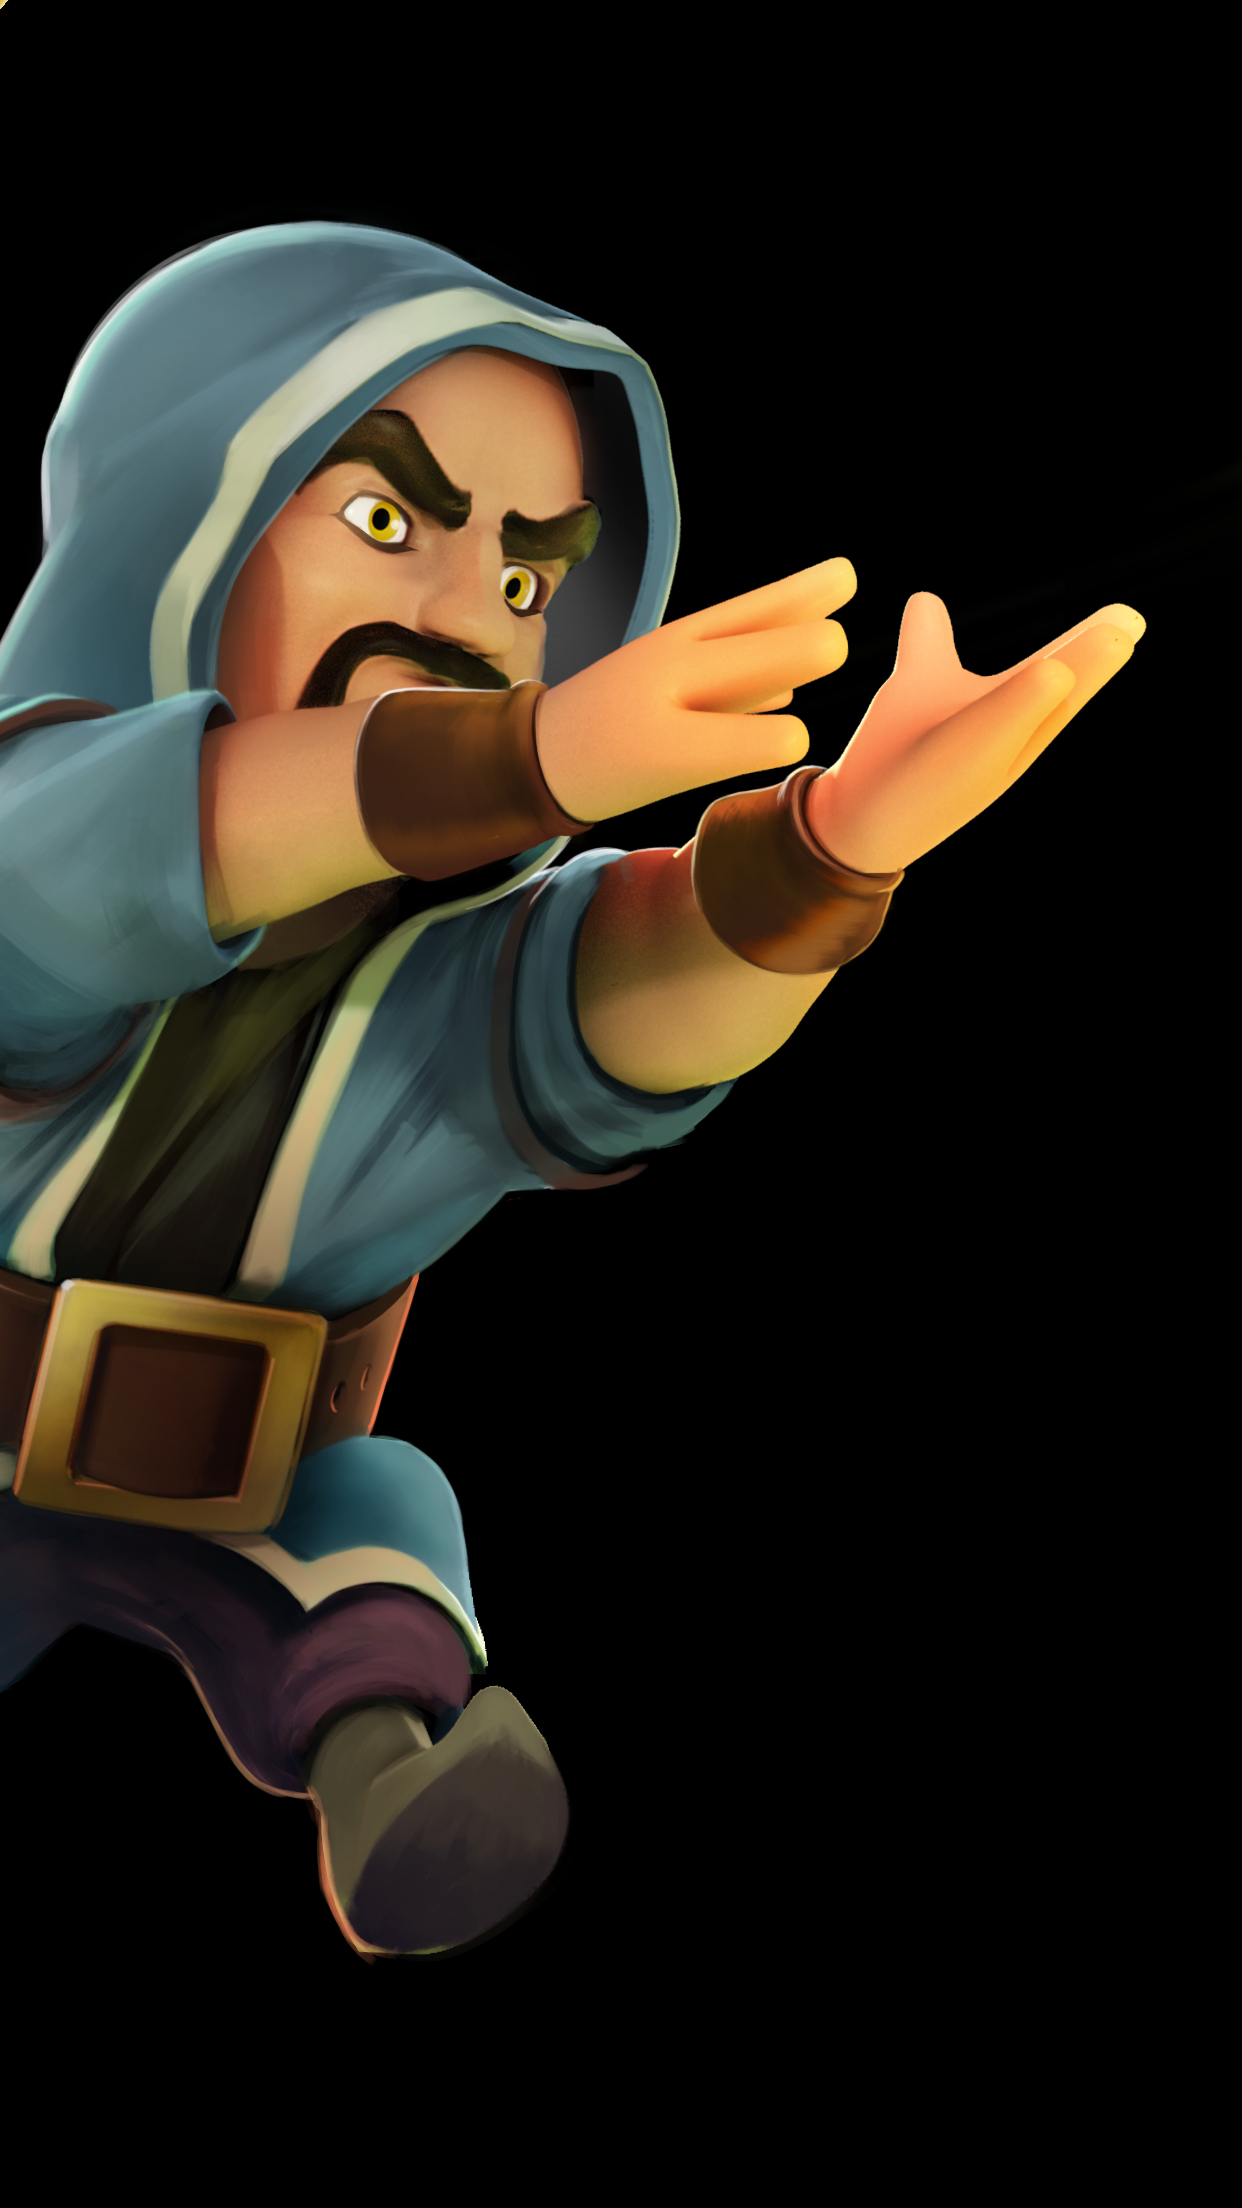 Wallpaper For Iphone 5s Black Clash Of Clans Wizard Wallpaper For Iphone X 8 7 6